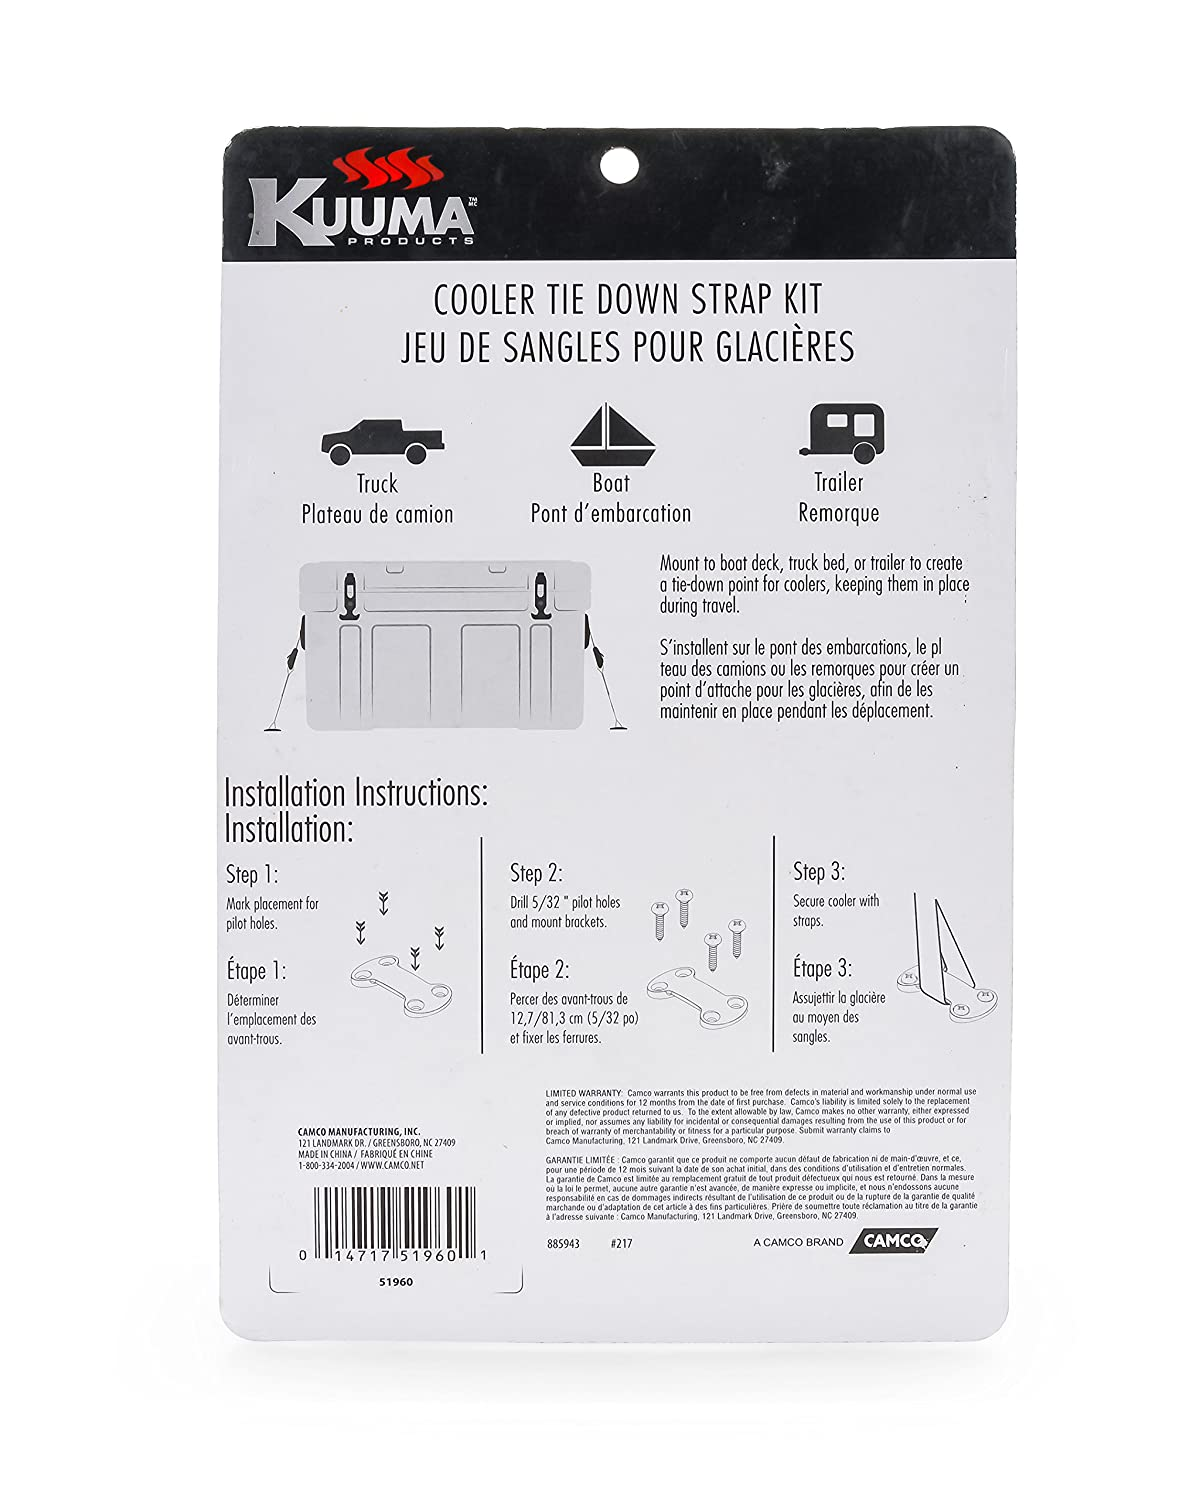 8 Mounting Brackets 2 2 Pack 2 and SS Screws-for RVs,Boats,and Truck Beds Inlcudes Straps, Kuuma 51960 Cooler Tie Kit